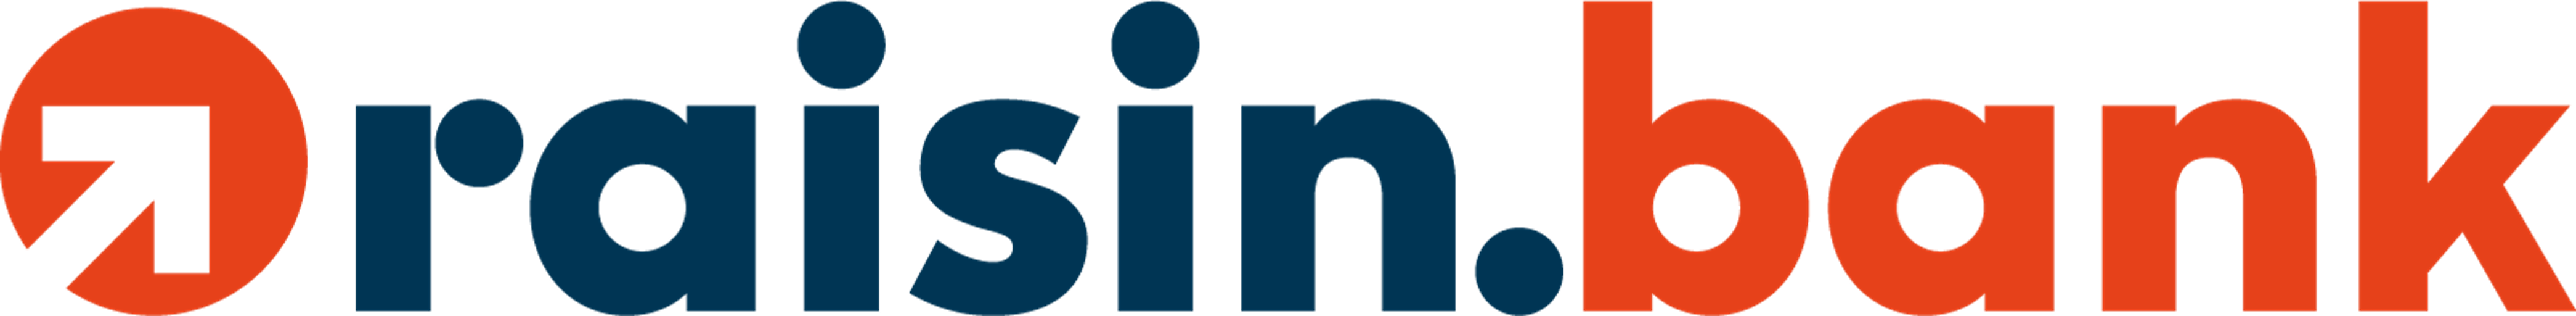 Partnerlogo Raisin Bank